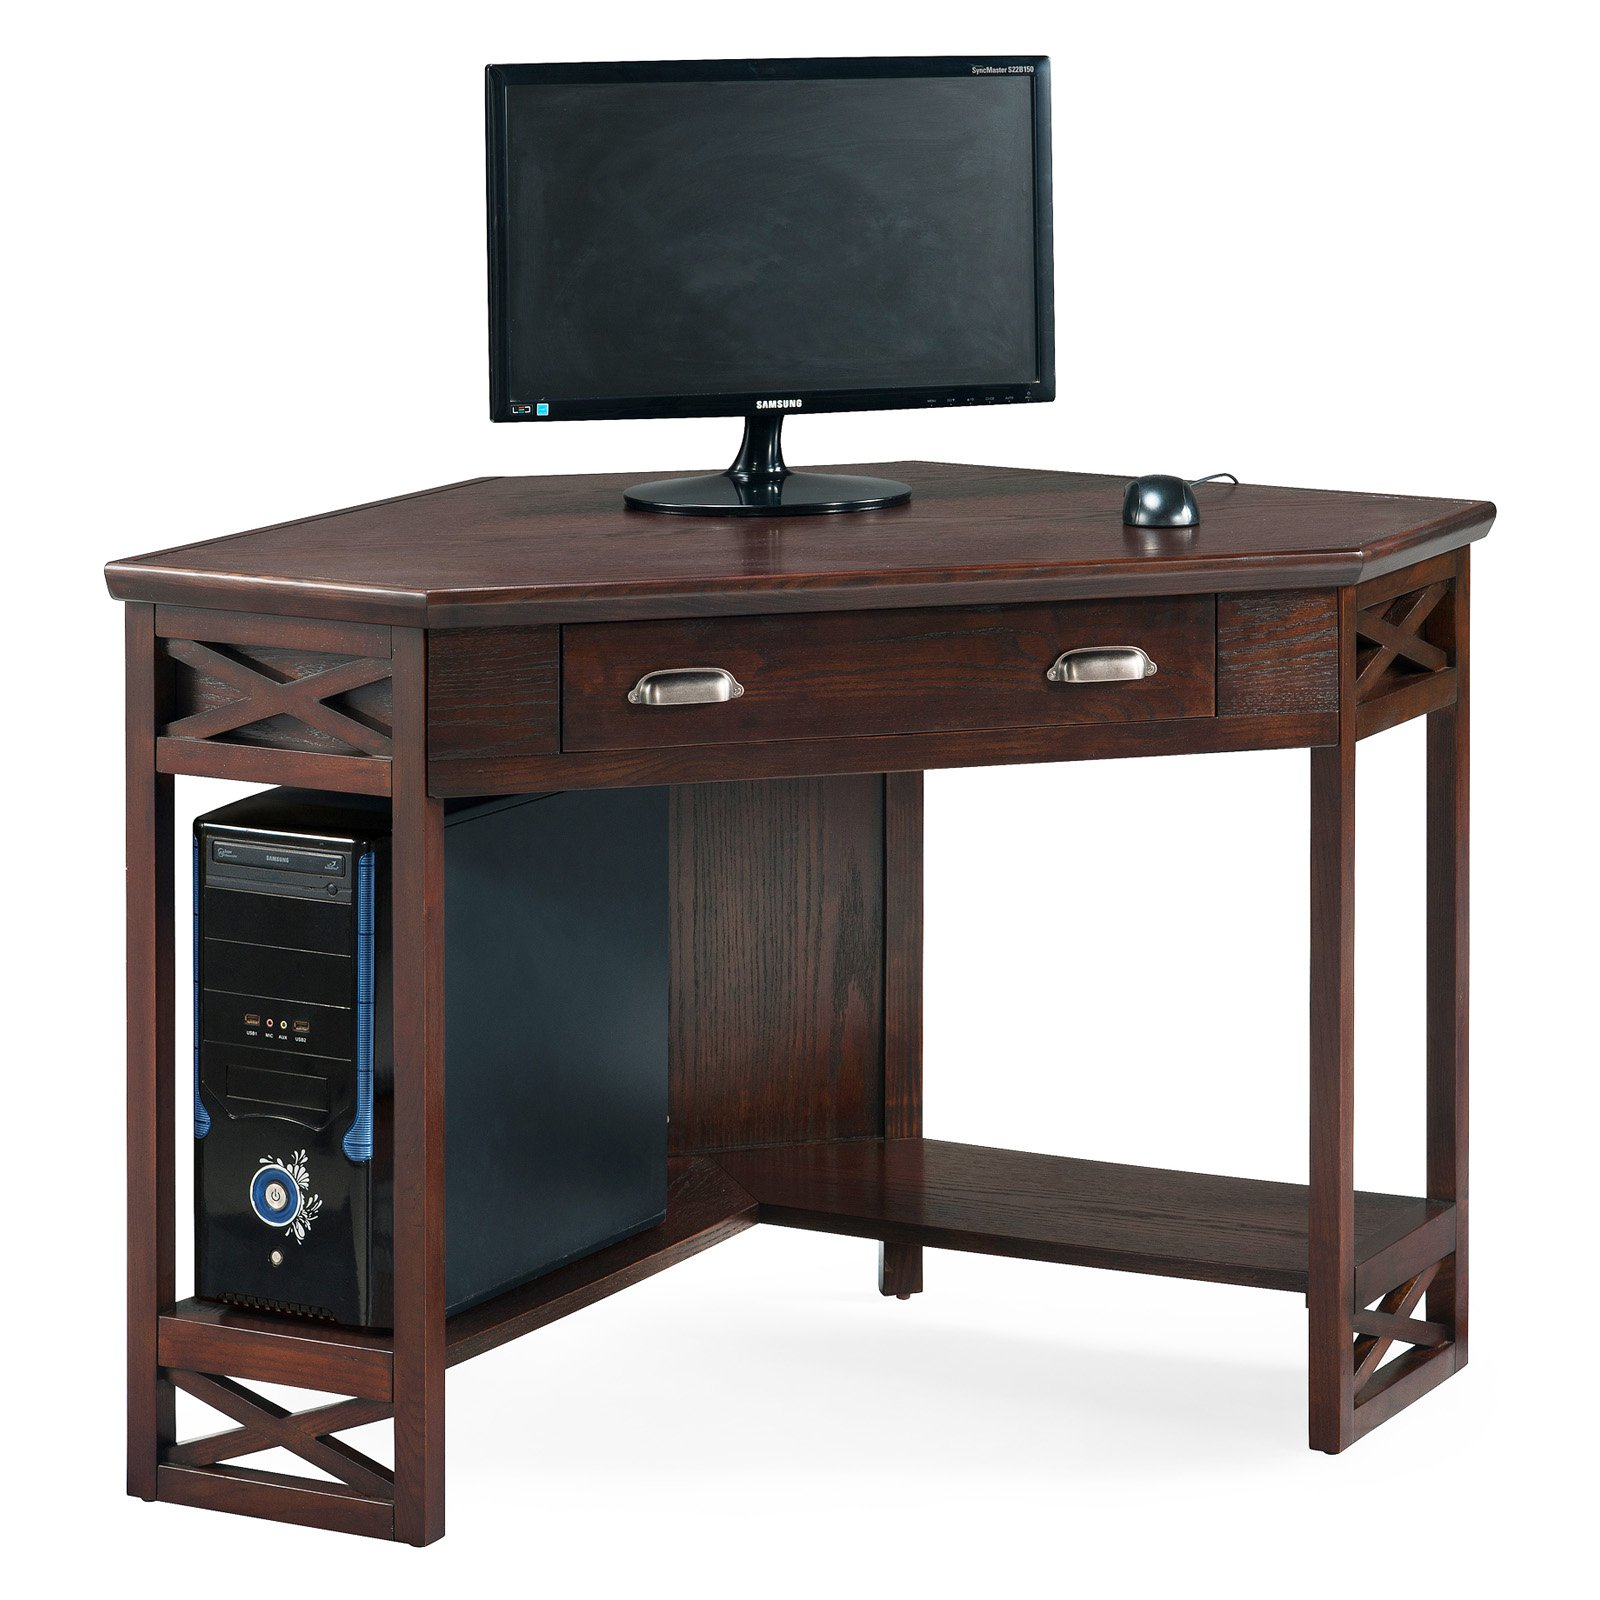 Leick Home 48 in. Corner Computer/Writing Desk - Chocolate Oak